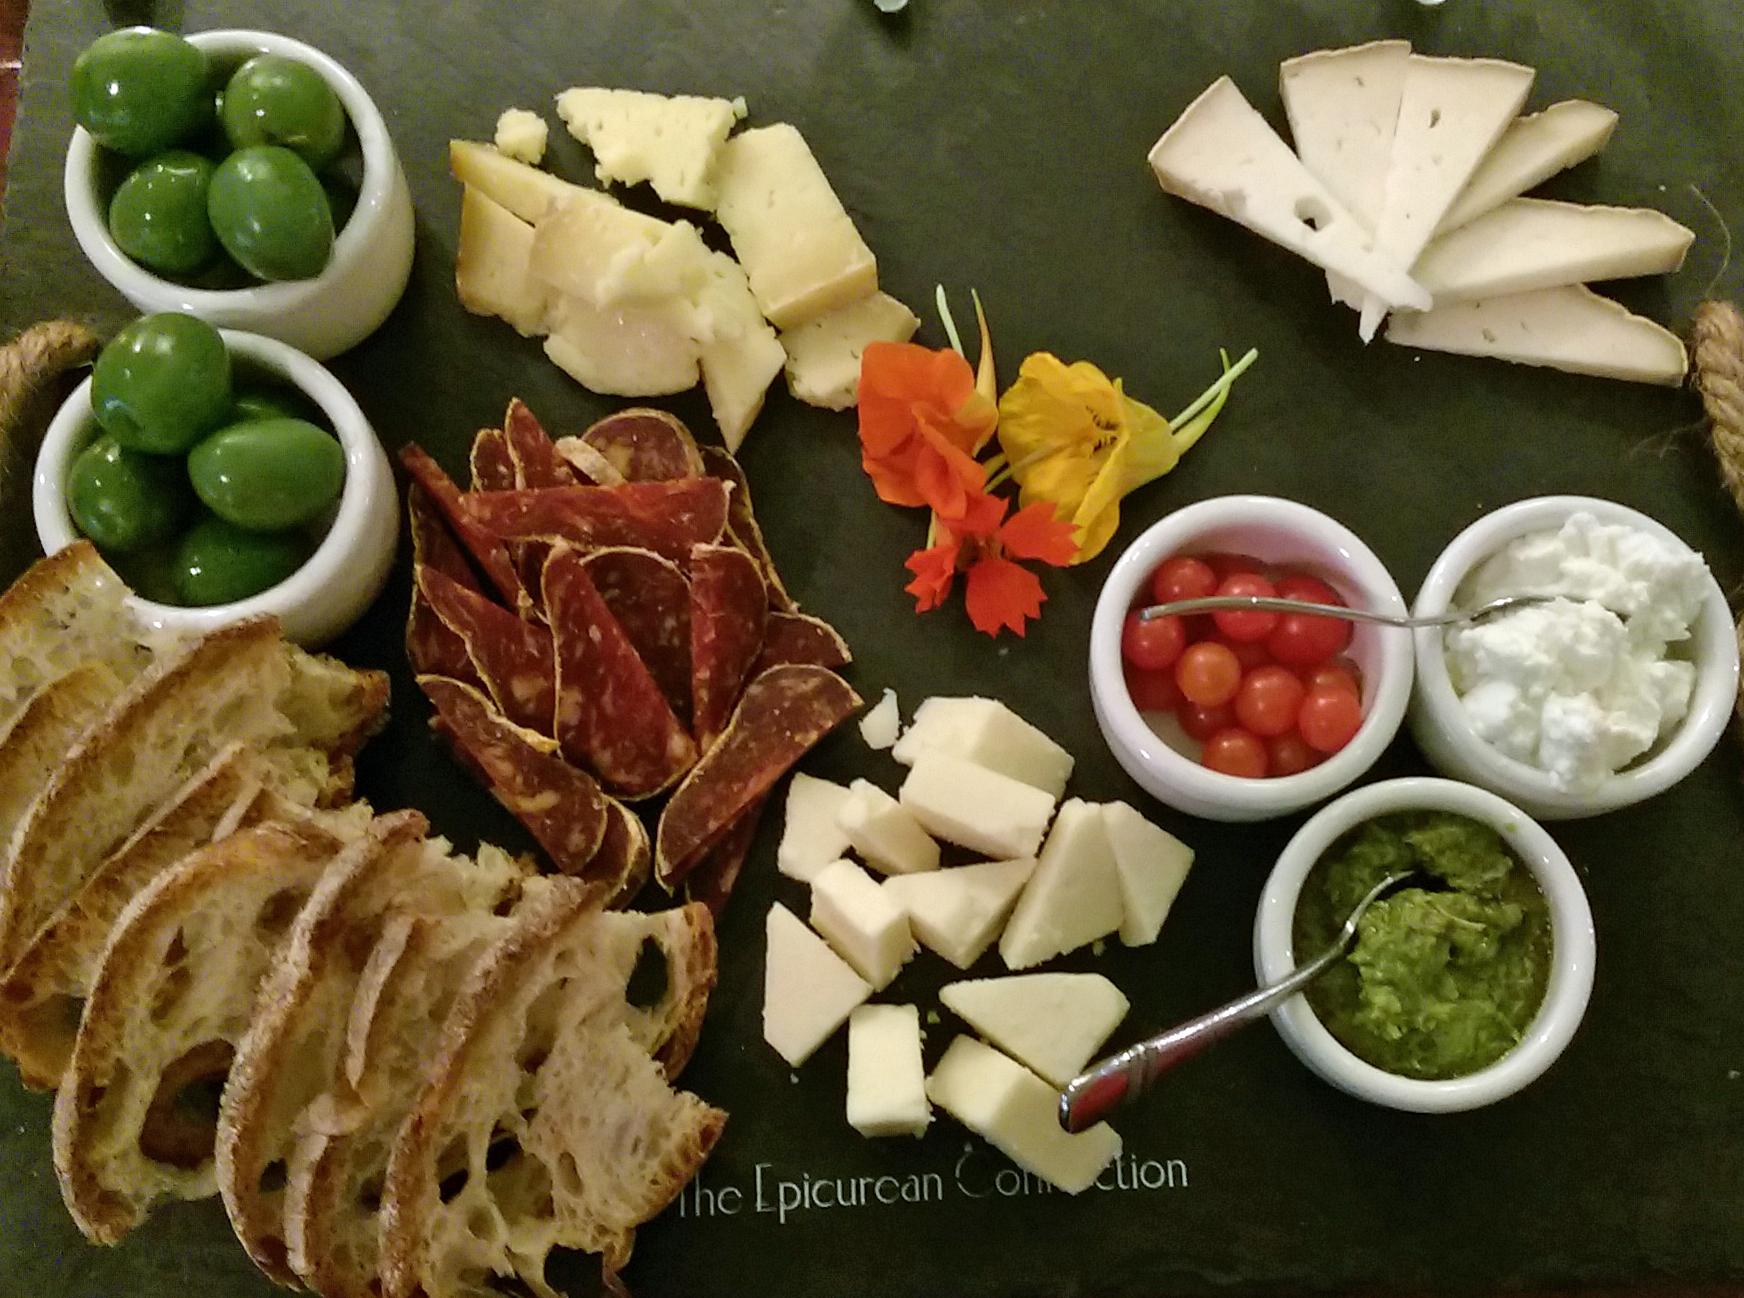 87319f40d A beautiful cheese plate at the Epicurean Connection complete with edible  nasturtium